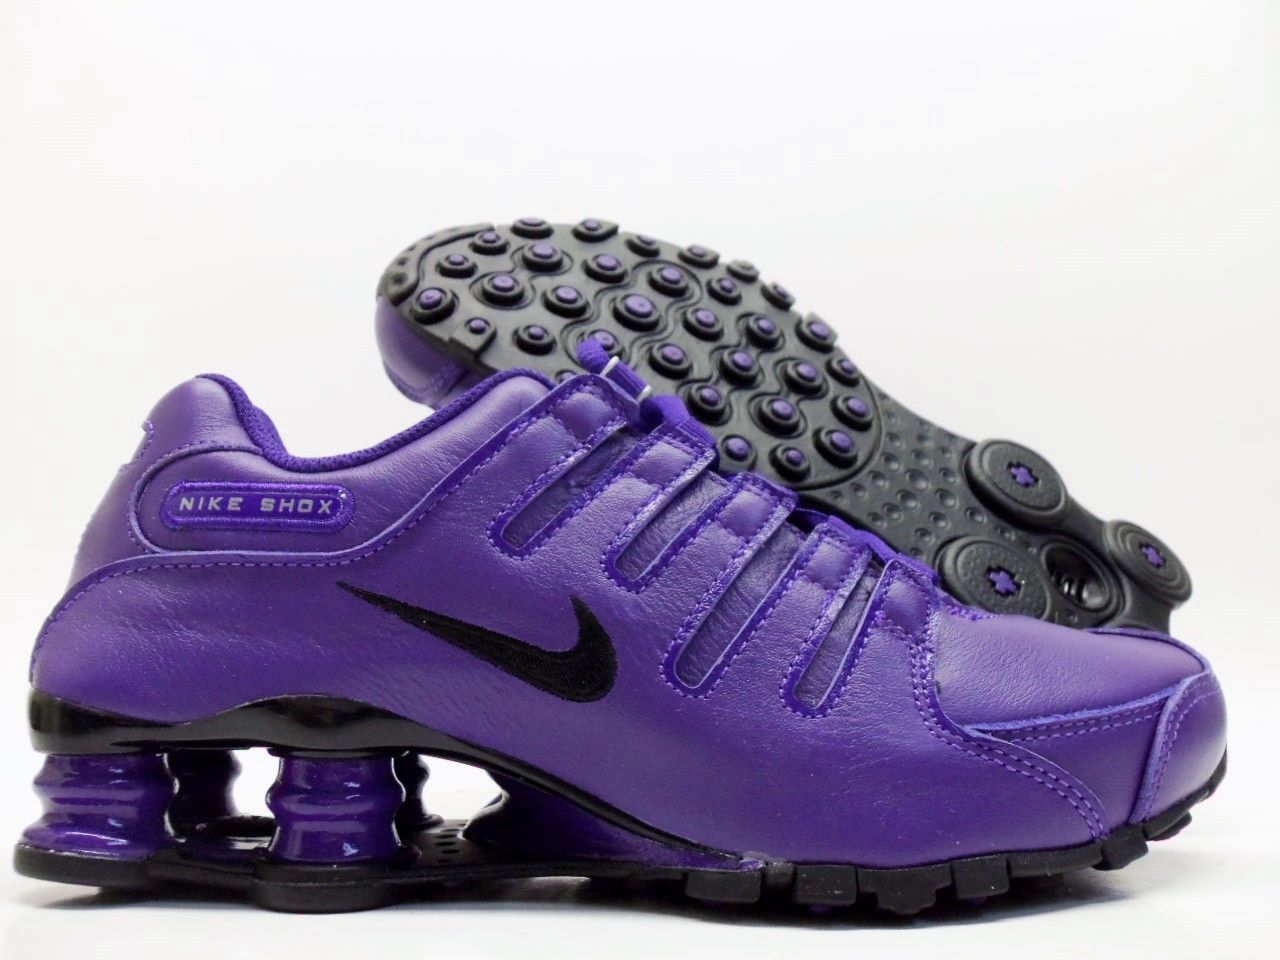 7a853465f346db NIKE SHOX NZ ID BLACK CLUB PURPLE-BLACK SIZE WOMEN S 7  445485-994 ...